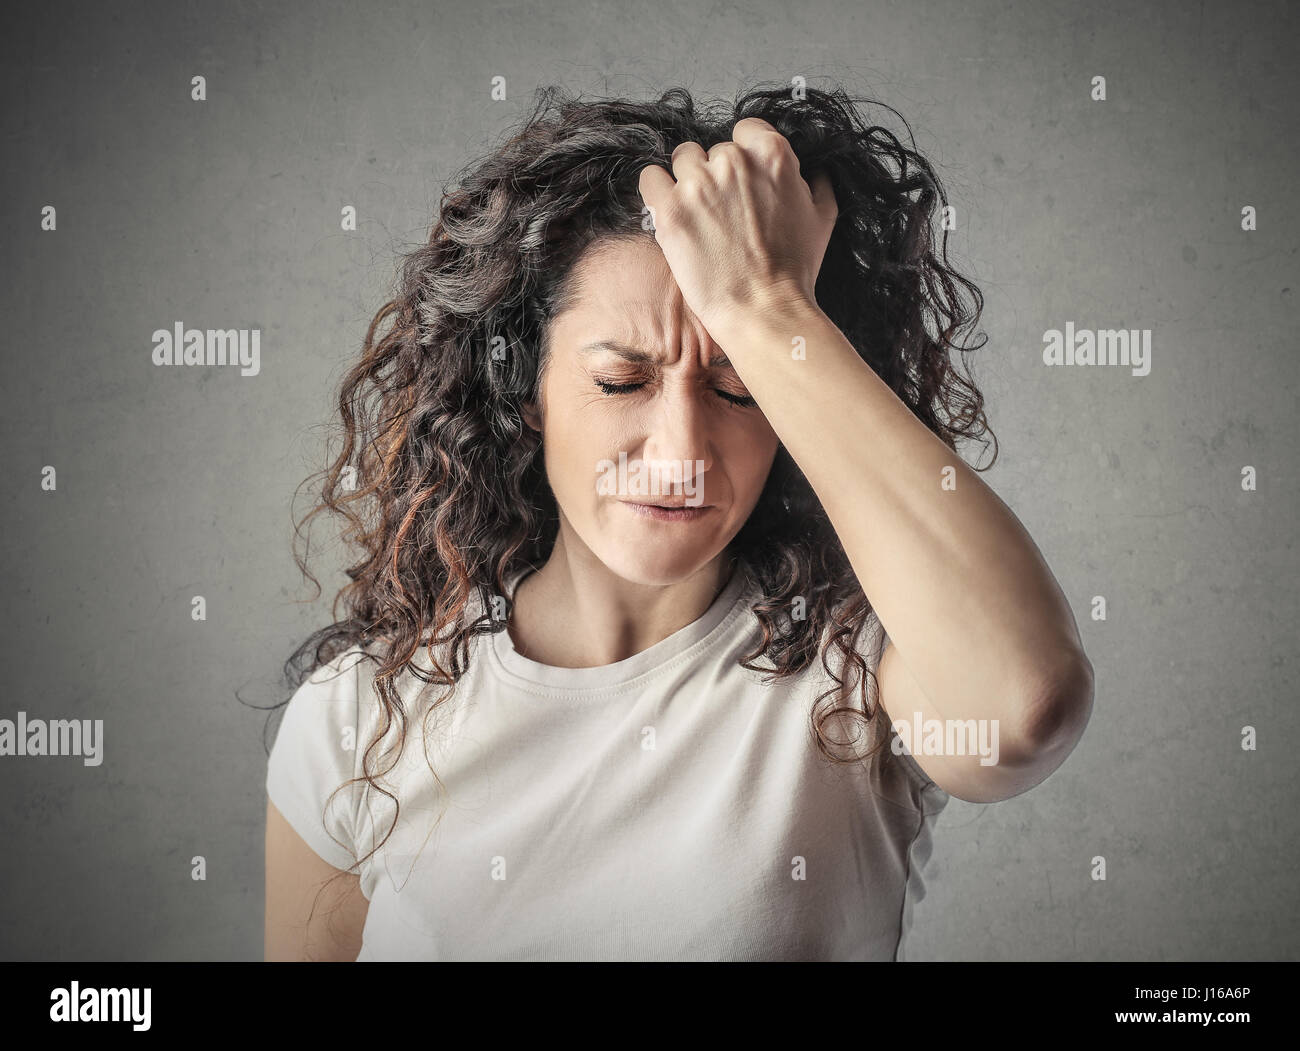 Brunette woman having a headache - Stock Image